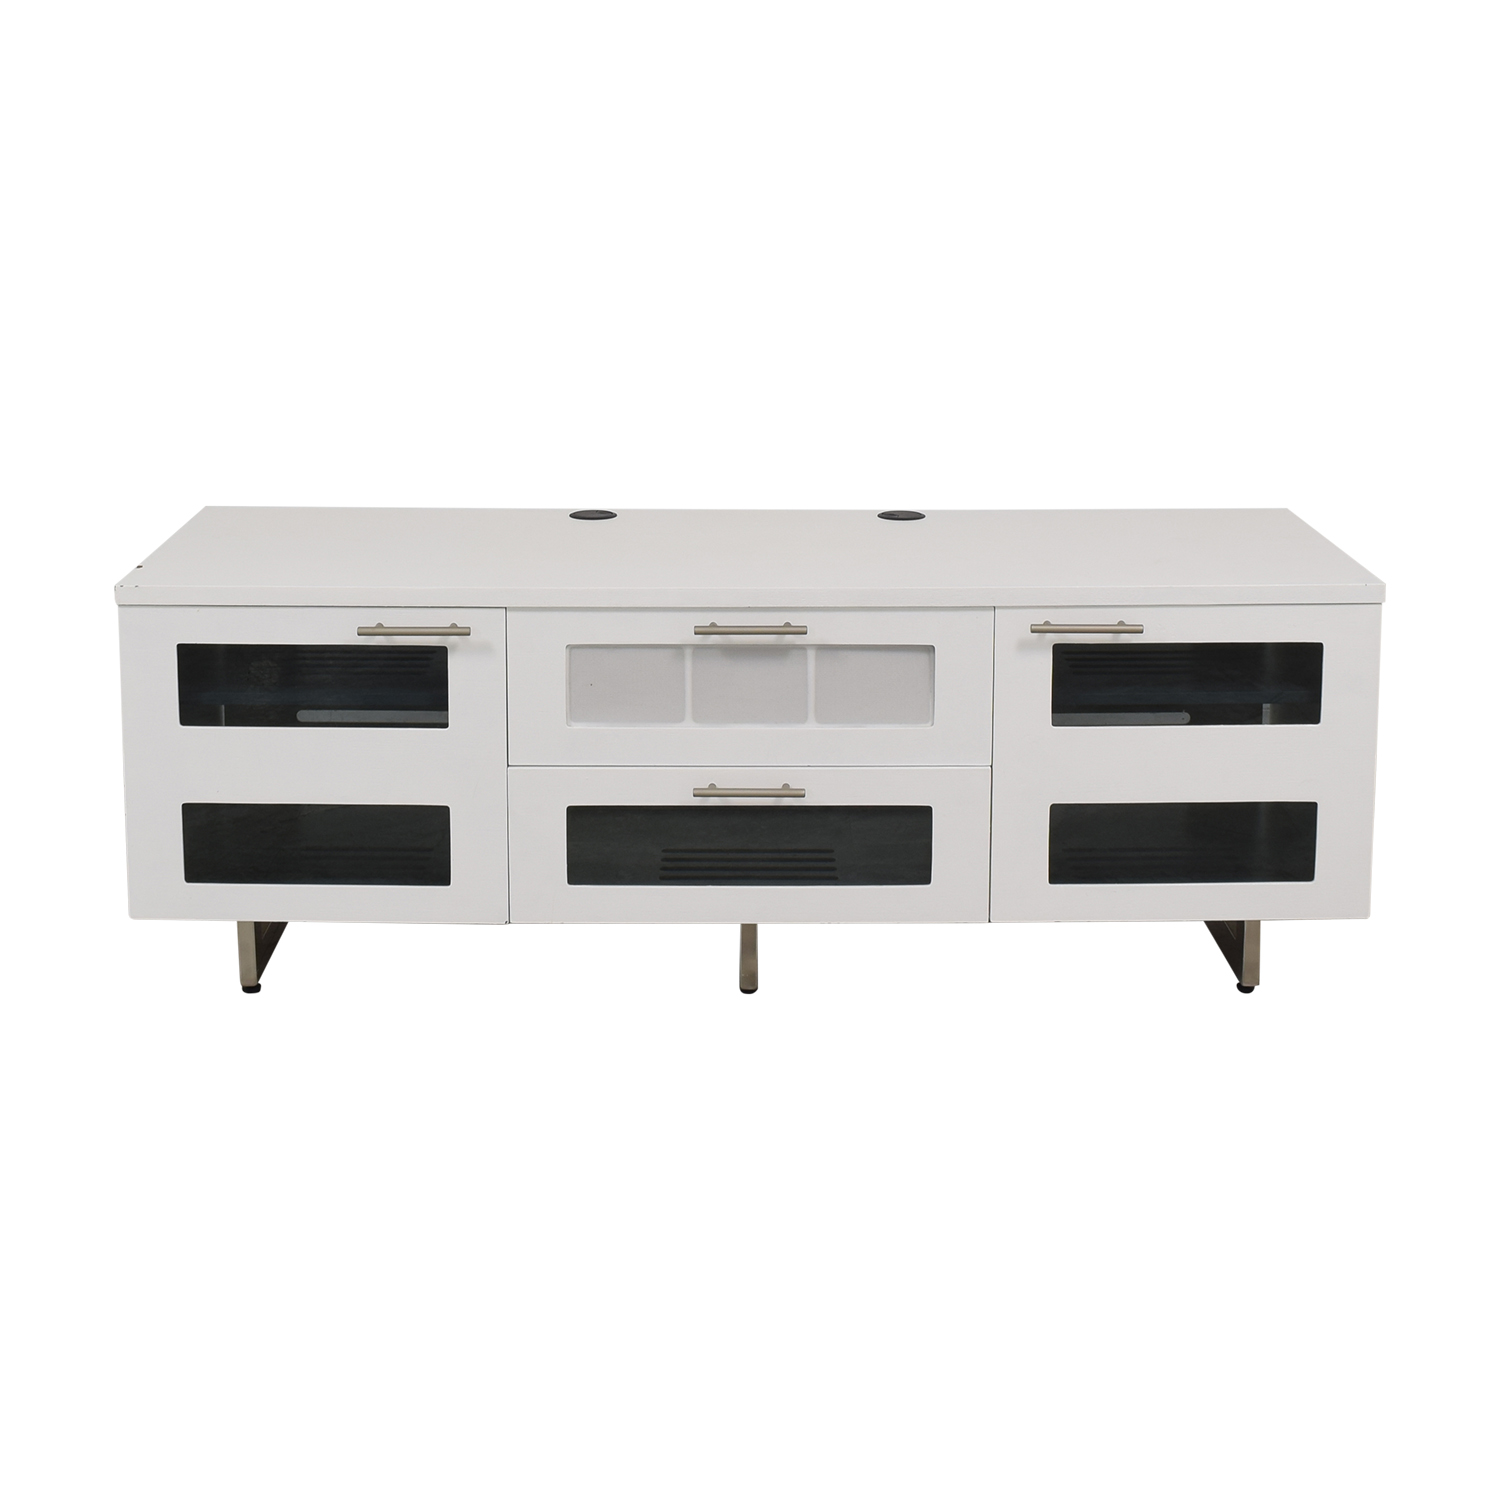 BDI Furniture BDI Avion Noir TV Stand Storage